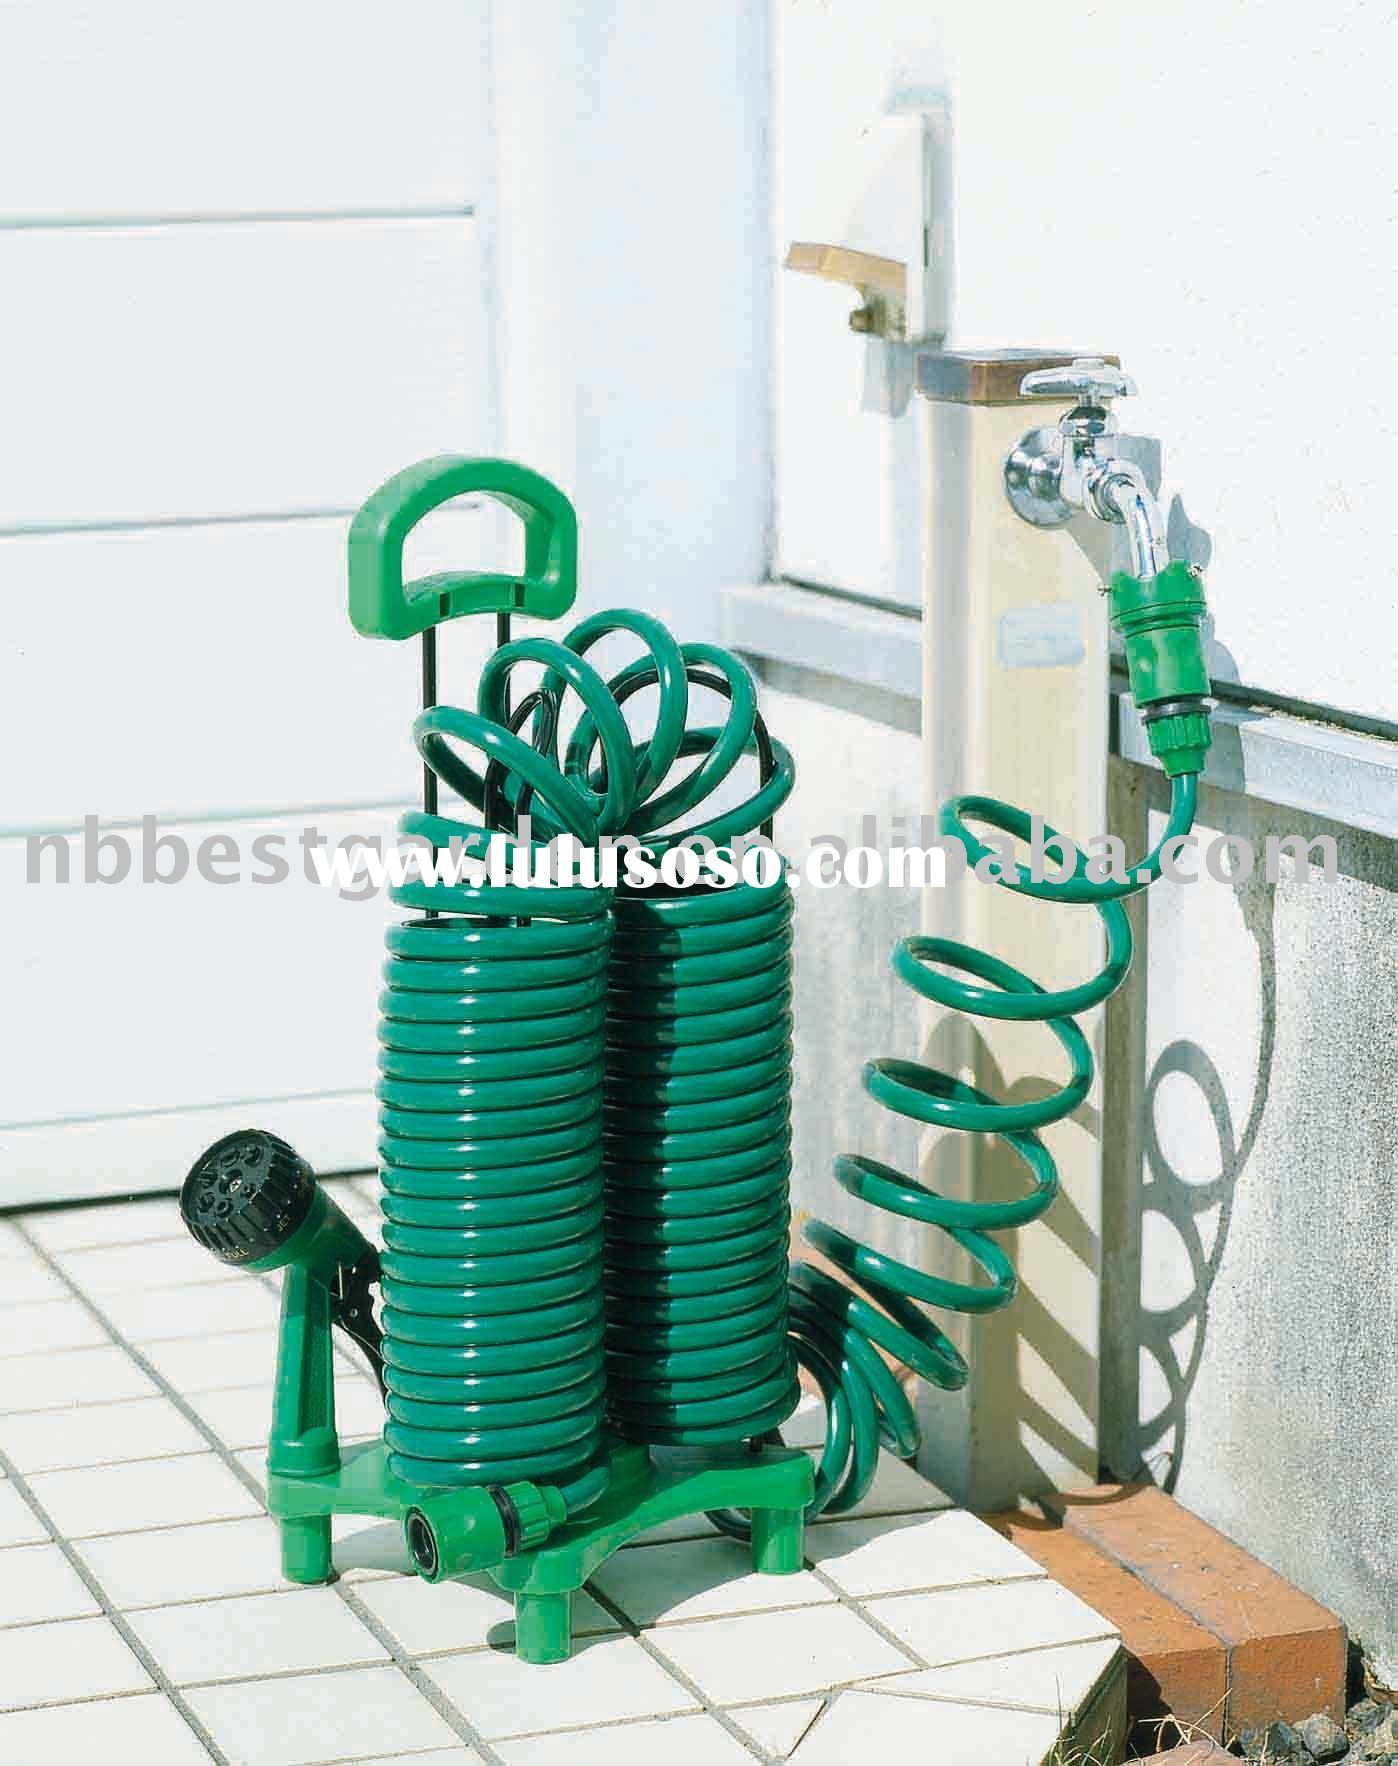 Garden Coil Hose Hanger For 7.5M coil hose,hose nozzle and water wand